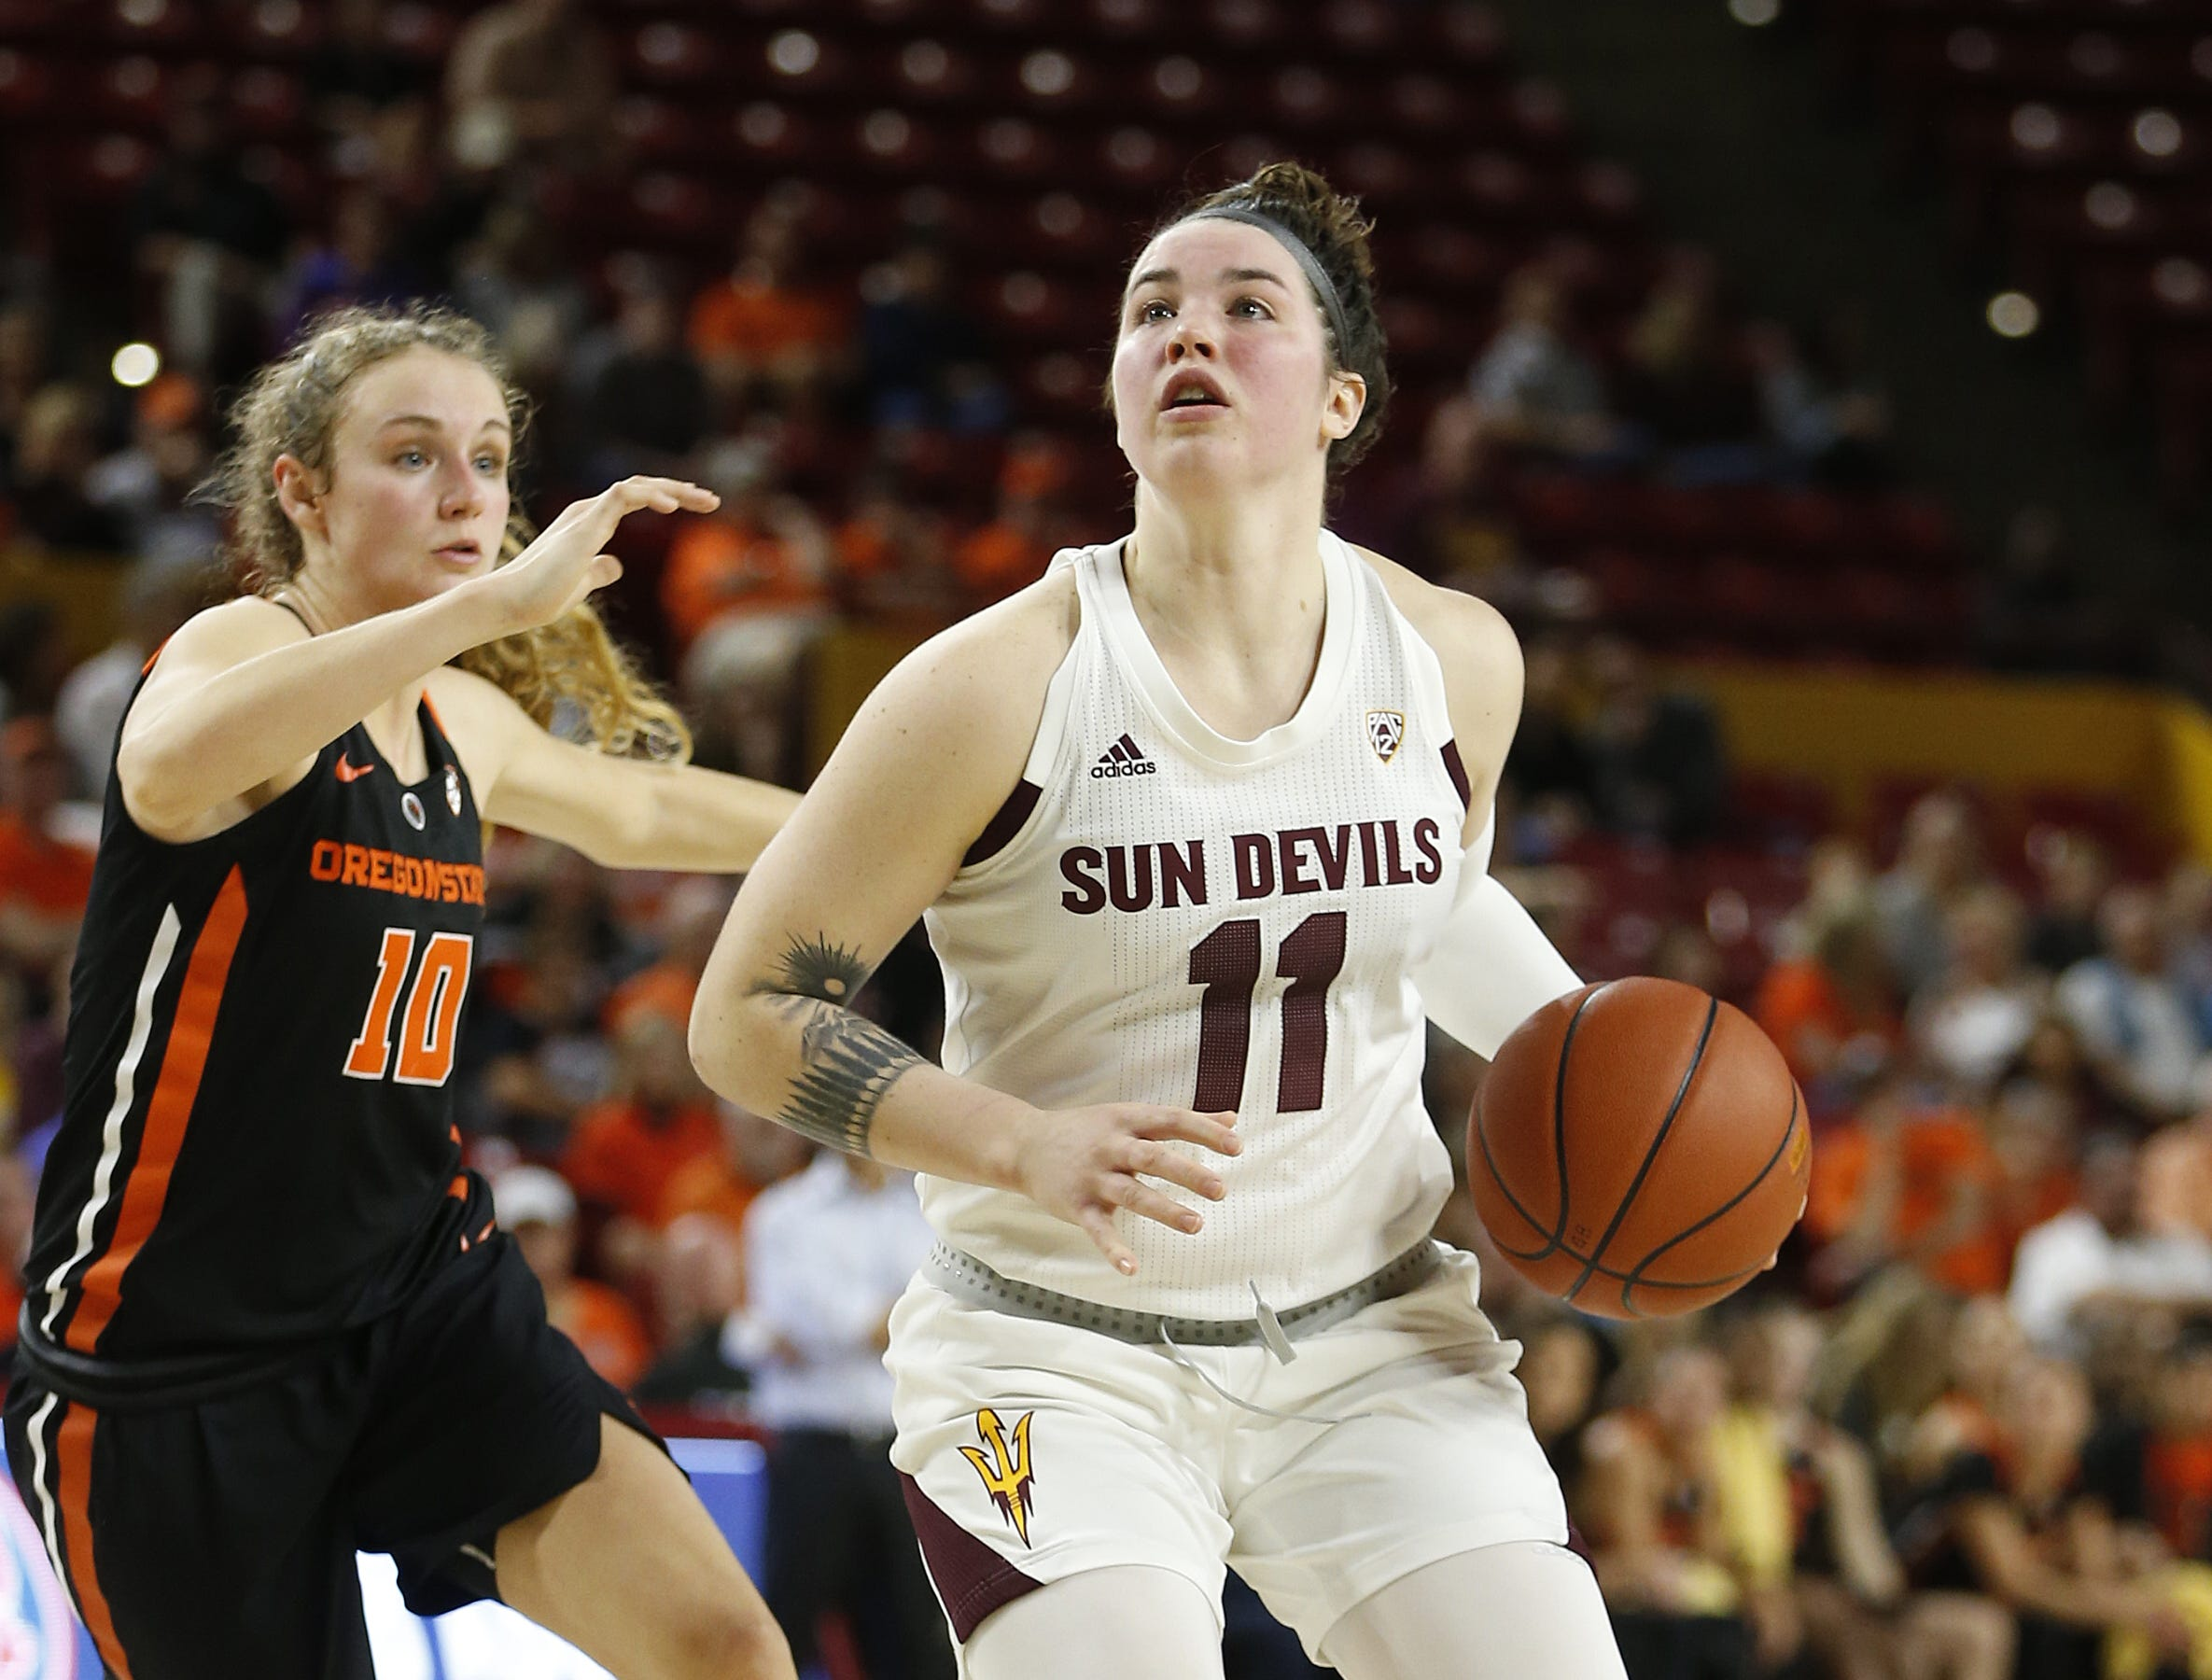 ASU's Robbi Ryan (11) dribbles into the lane against Oregon State's Katie McWilliams (10) during the second half at Wells Fargo Arena in Tempe, Ariz. on March 1, 2019.